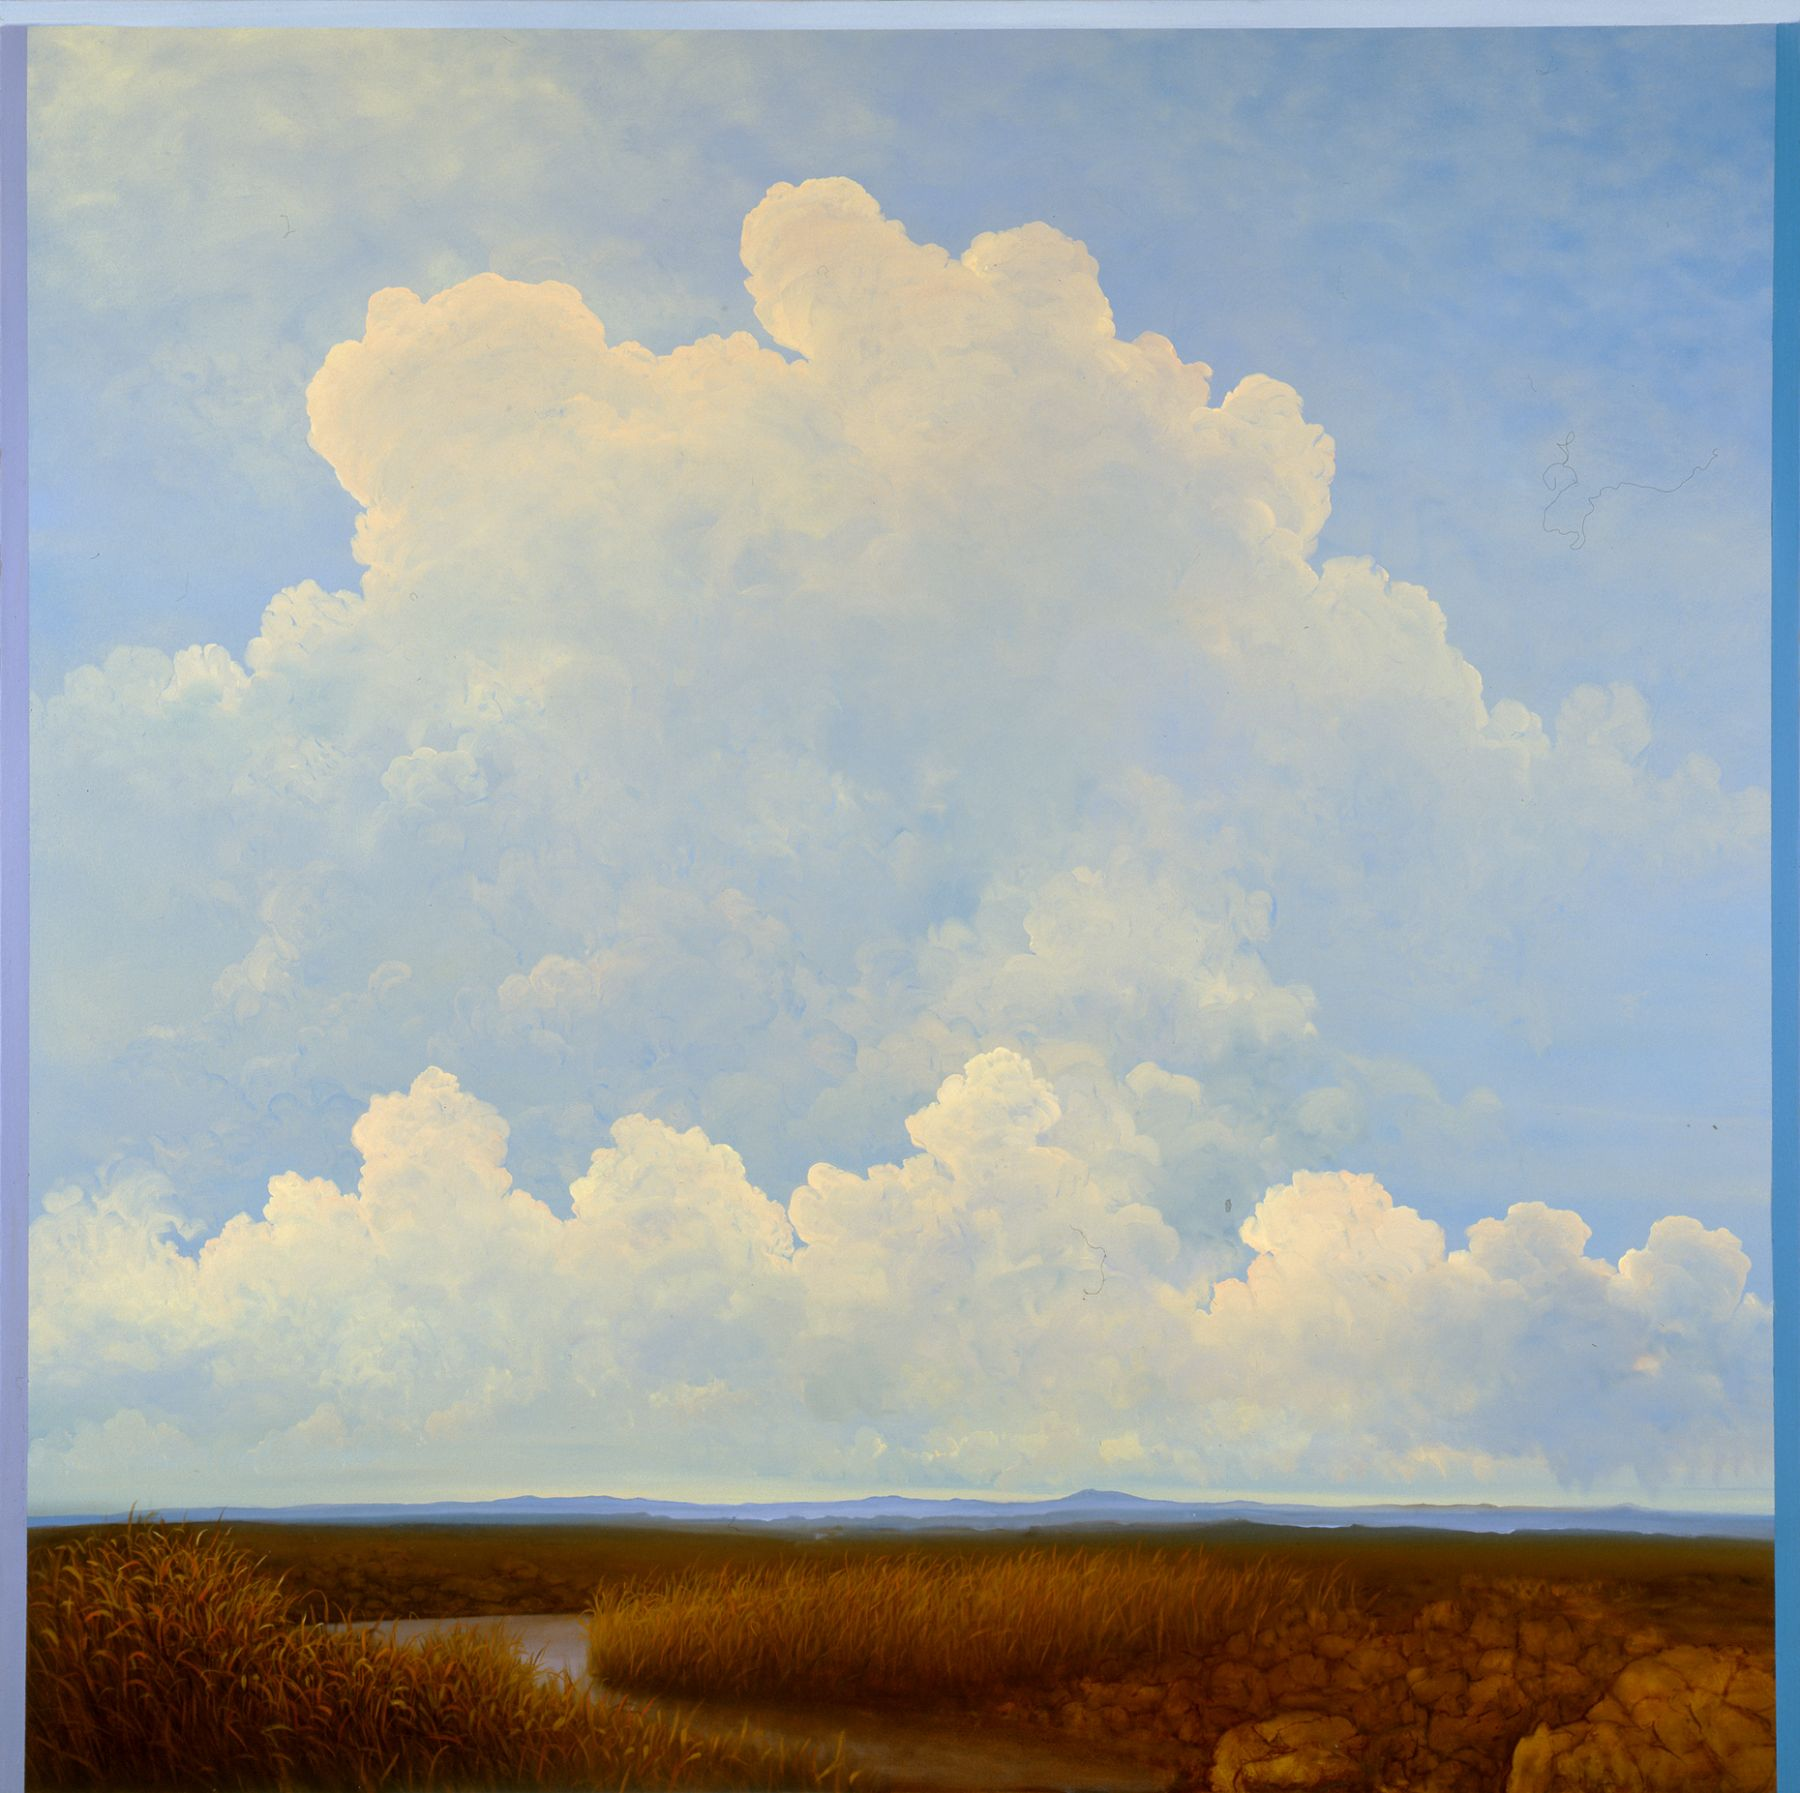 Tula Telfair, Justified by the Possibility (SOLD), 2008, oil on canvas, 60 x 60 inches